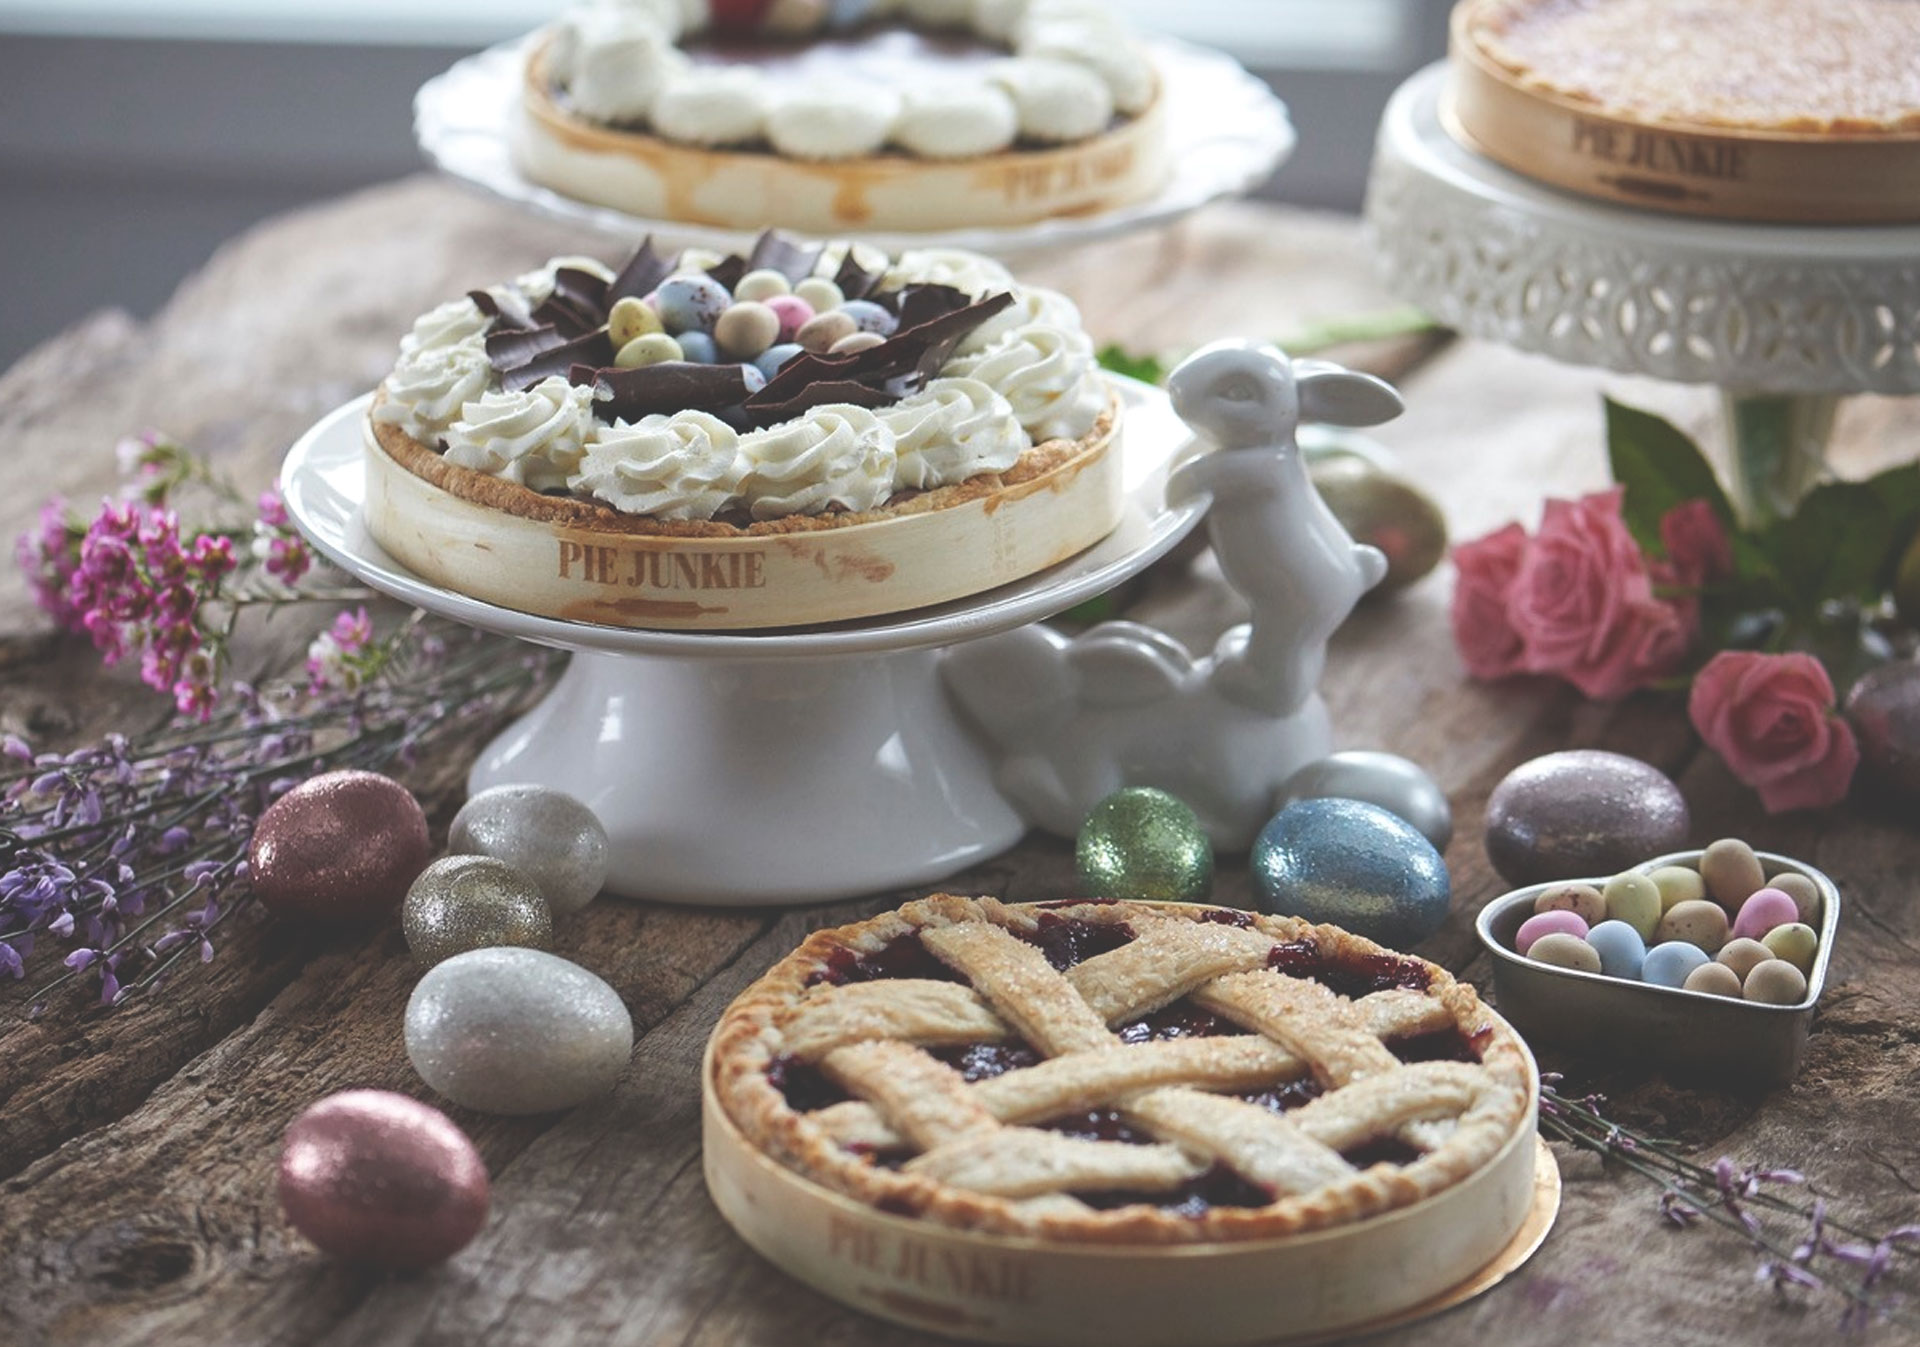 Pie Junkie bakes sweet and savoury pies with homemade fillings.